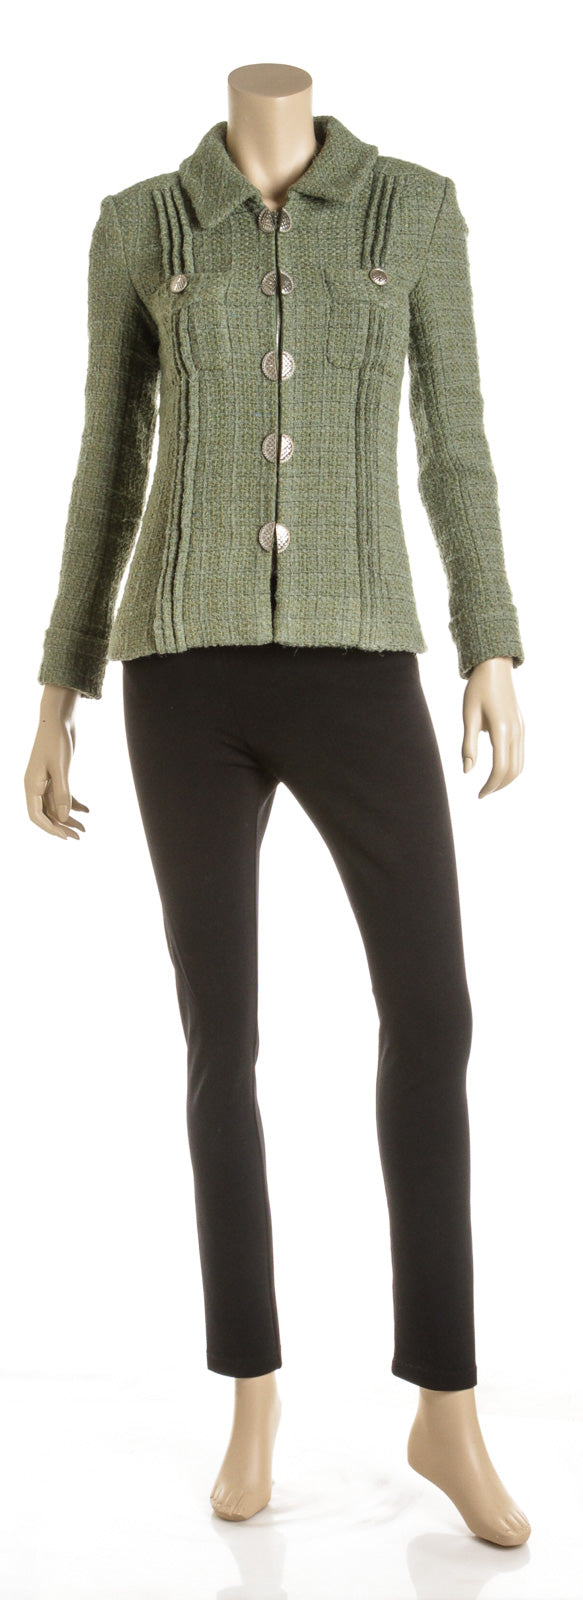 Chanel Green Wool Blend Tweed Cuba Collection Jacket (Size 36)